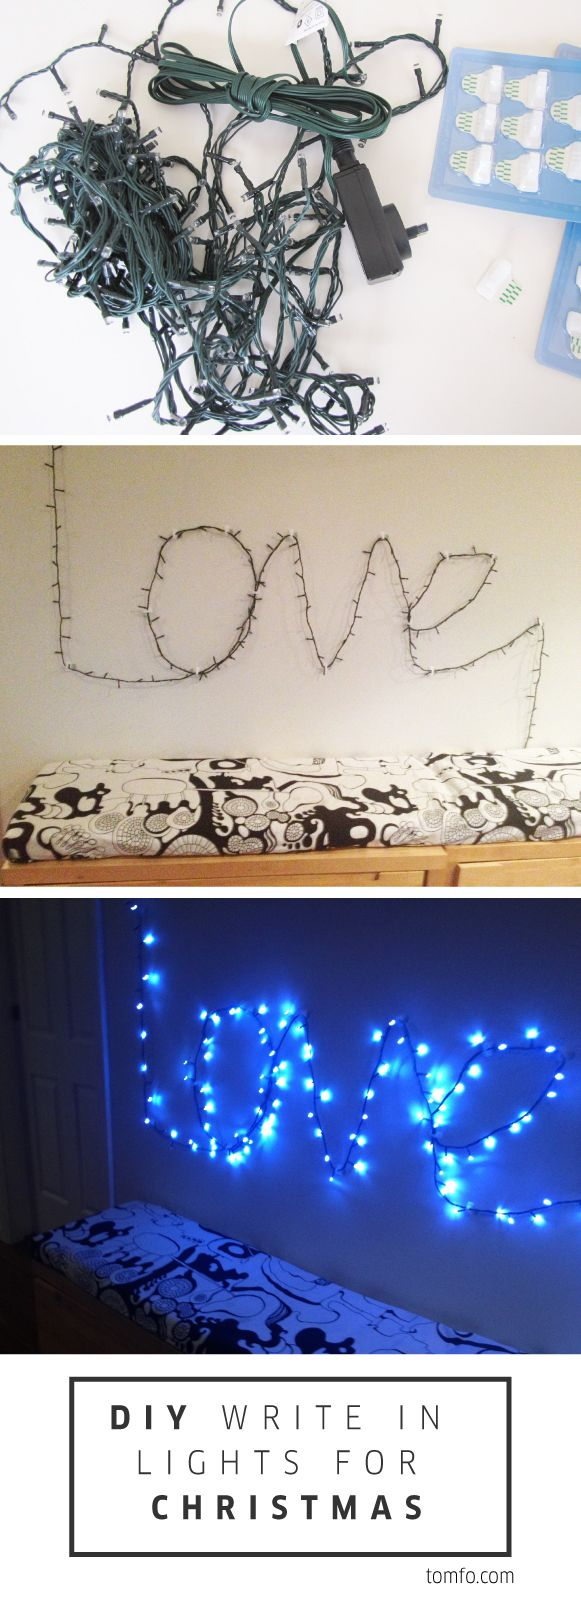 Write a message with lights on the wall. Easy to do with Christmas